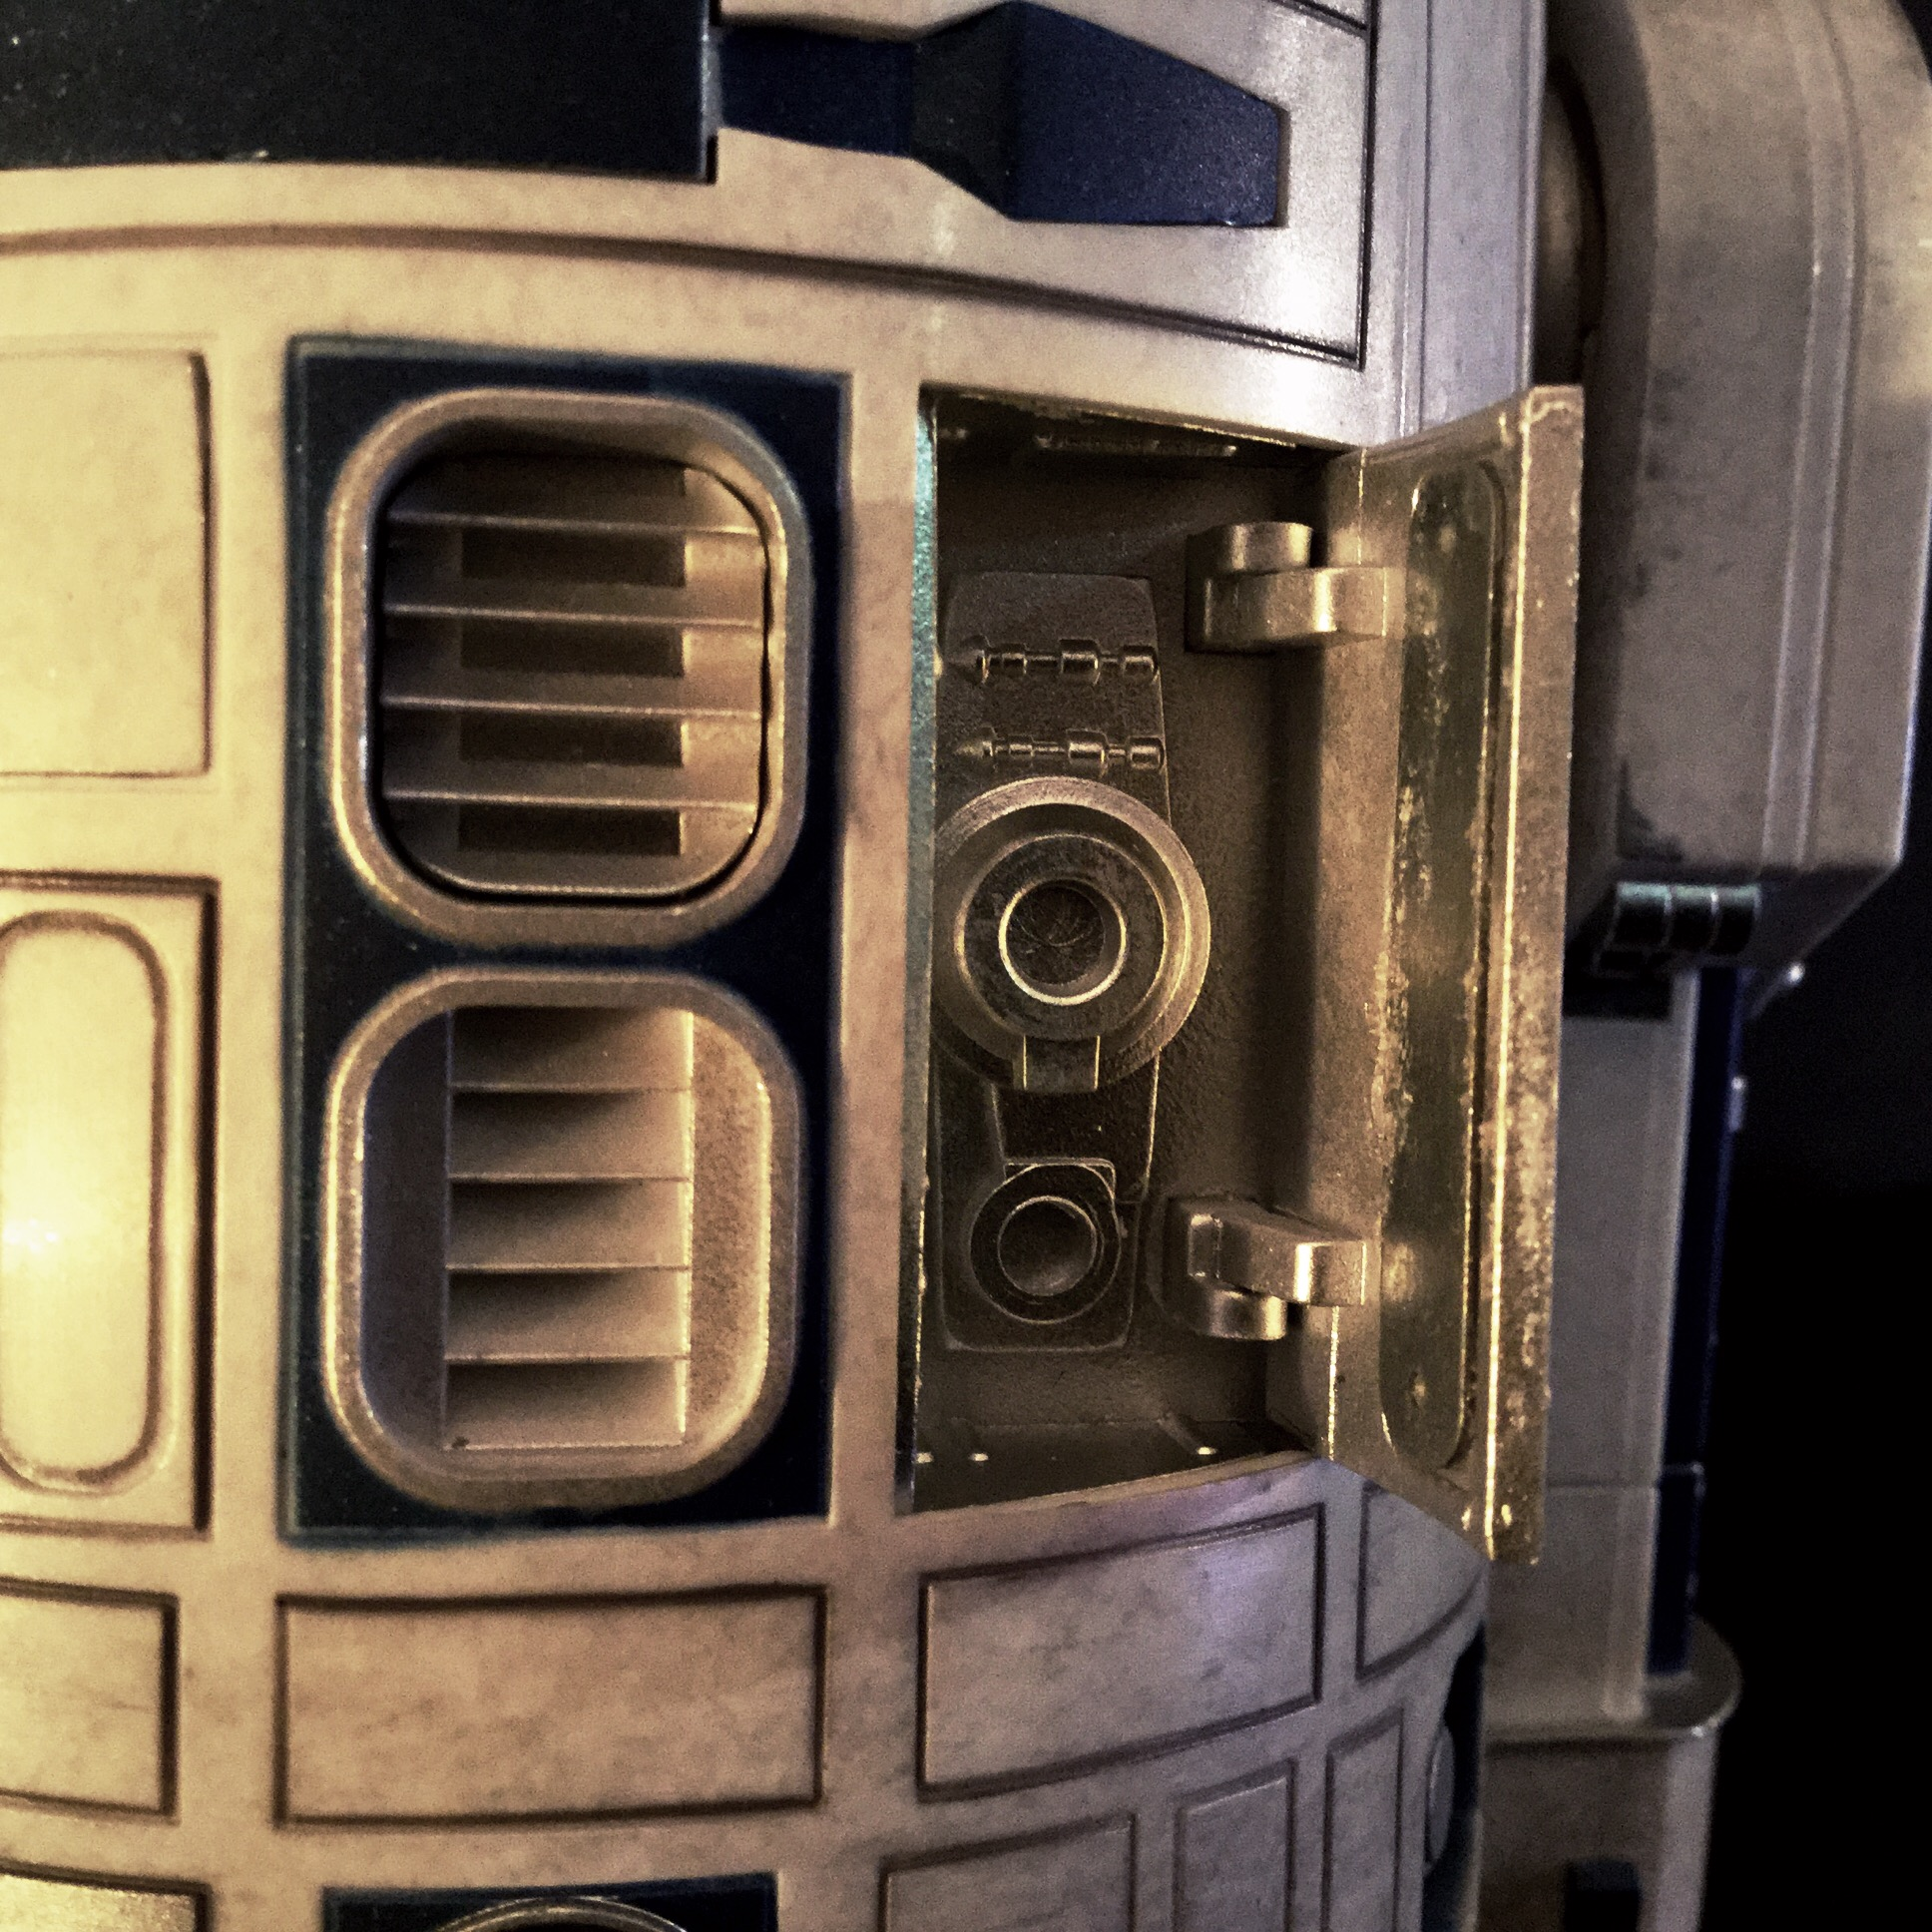 [REVIEW] Star Wars : R2-D2 Deluxe (Sideshow) 16442325651_160611539f_o